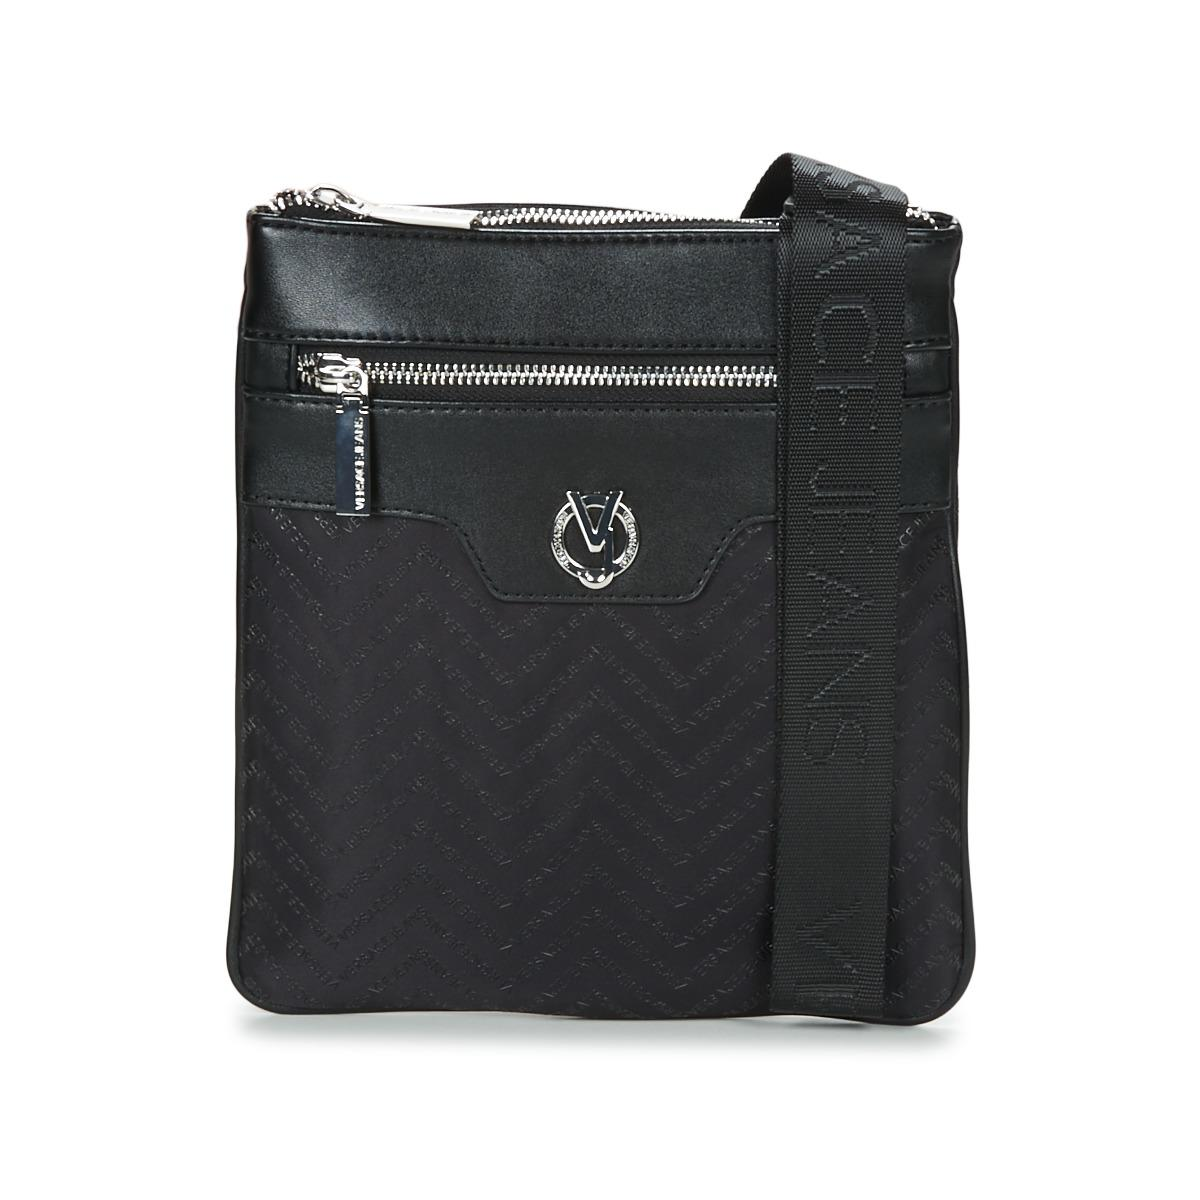 Versace Jeans Yrbb08 Pouch in Black for Men - Save 15% - Lyst 03553470275b6